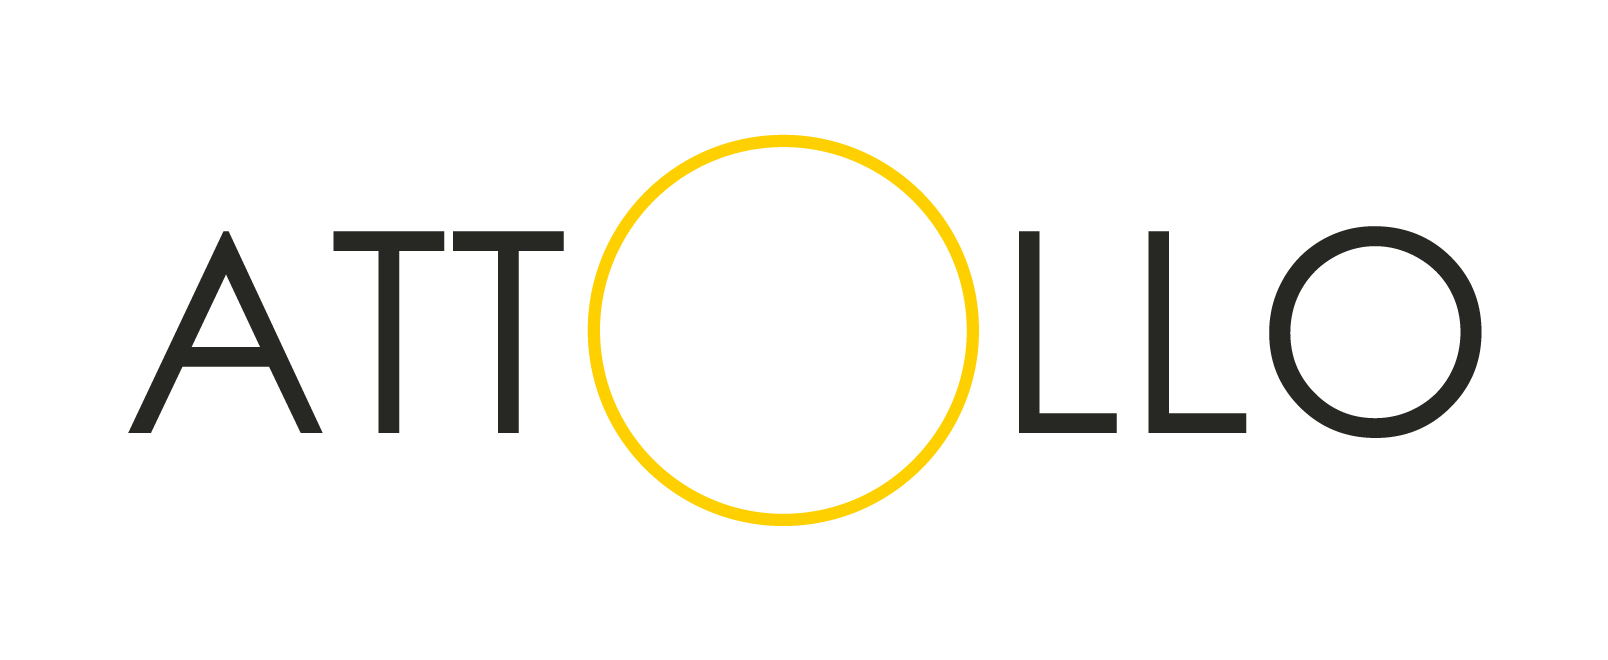 Attollo | Supporting a cleaner energy future